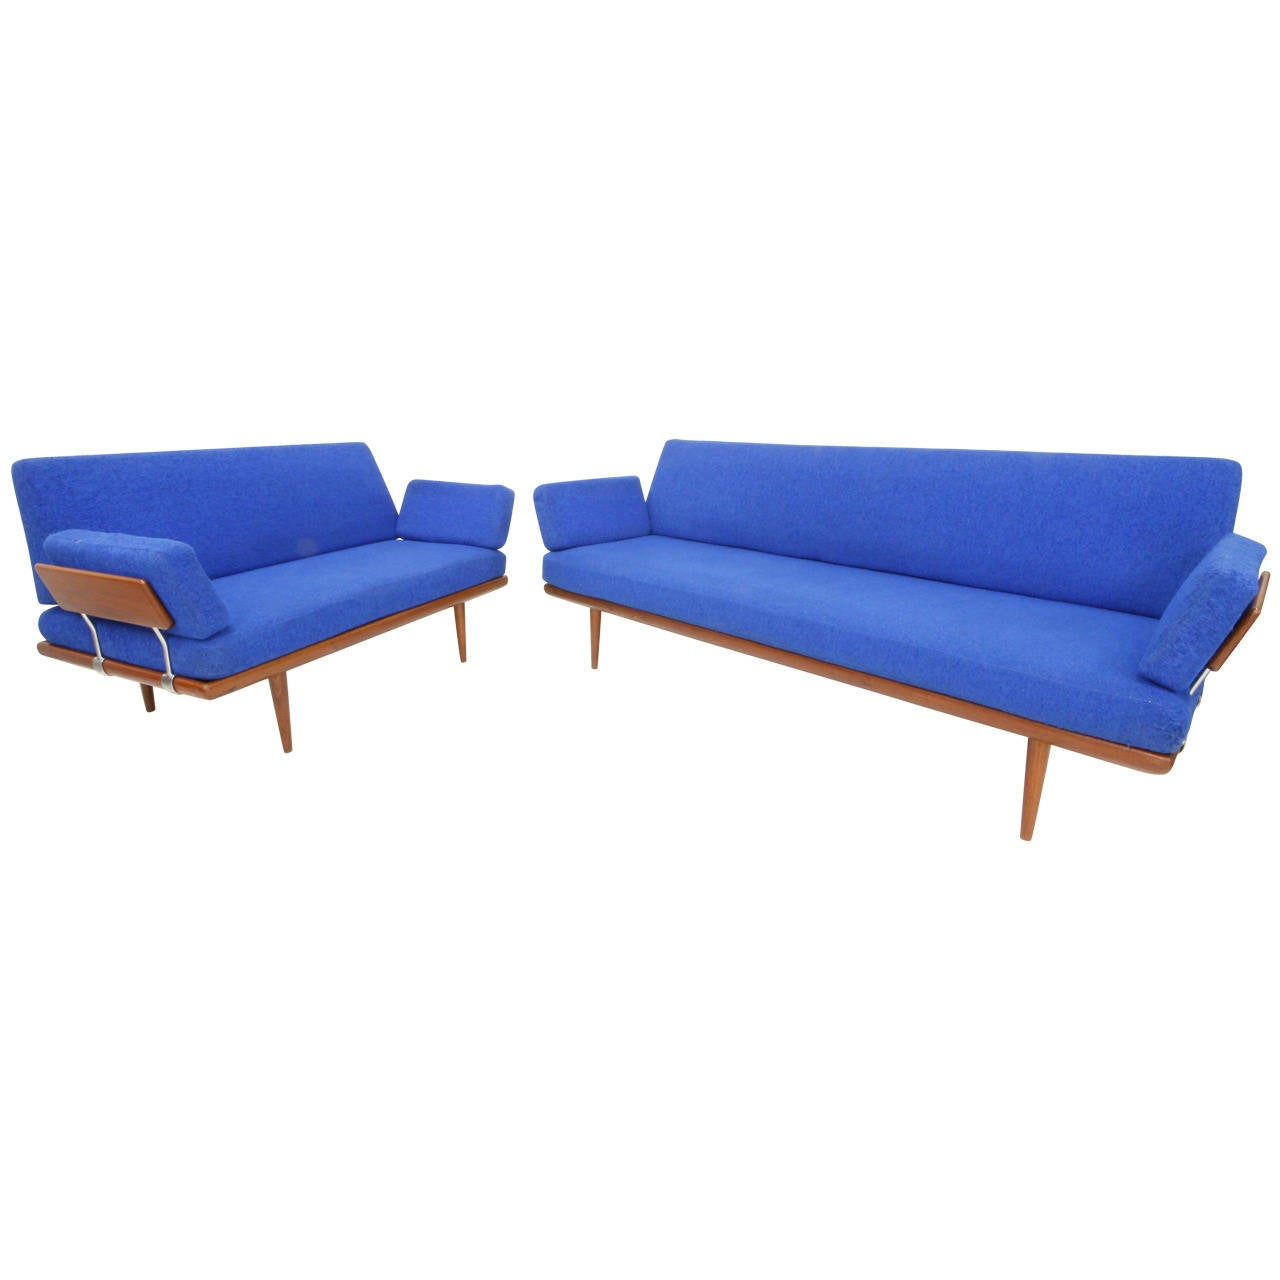 Original Danish Modern Daybed Set with Corner Table by  : 2265542l from www.1stdibs.com size 1280 x 1280 jpeg 52kB